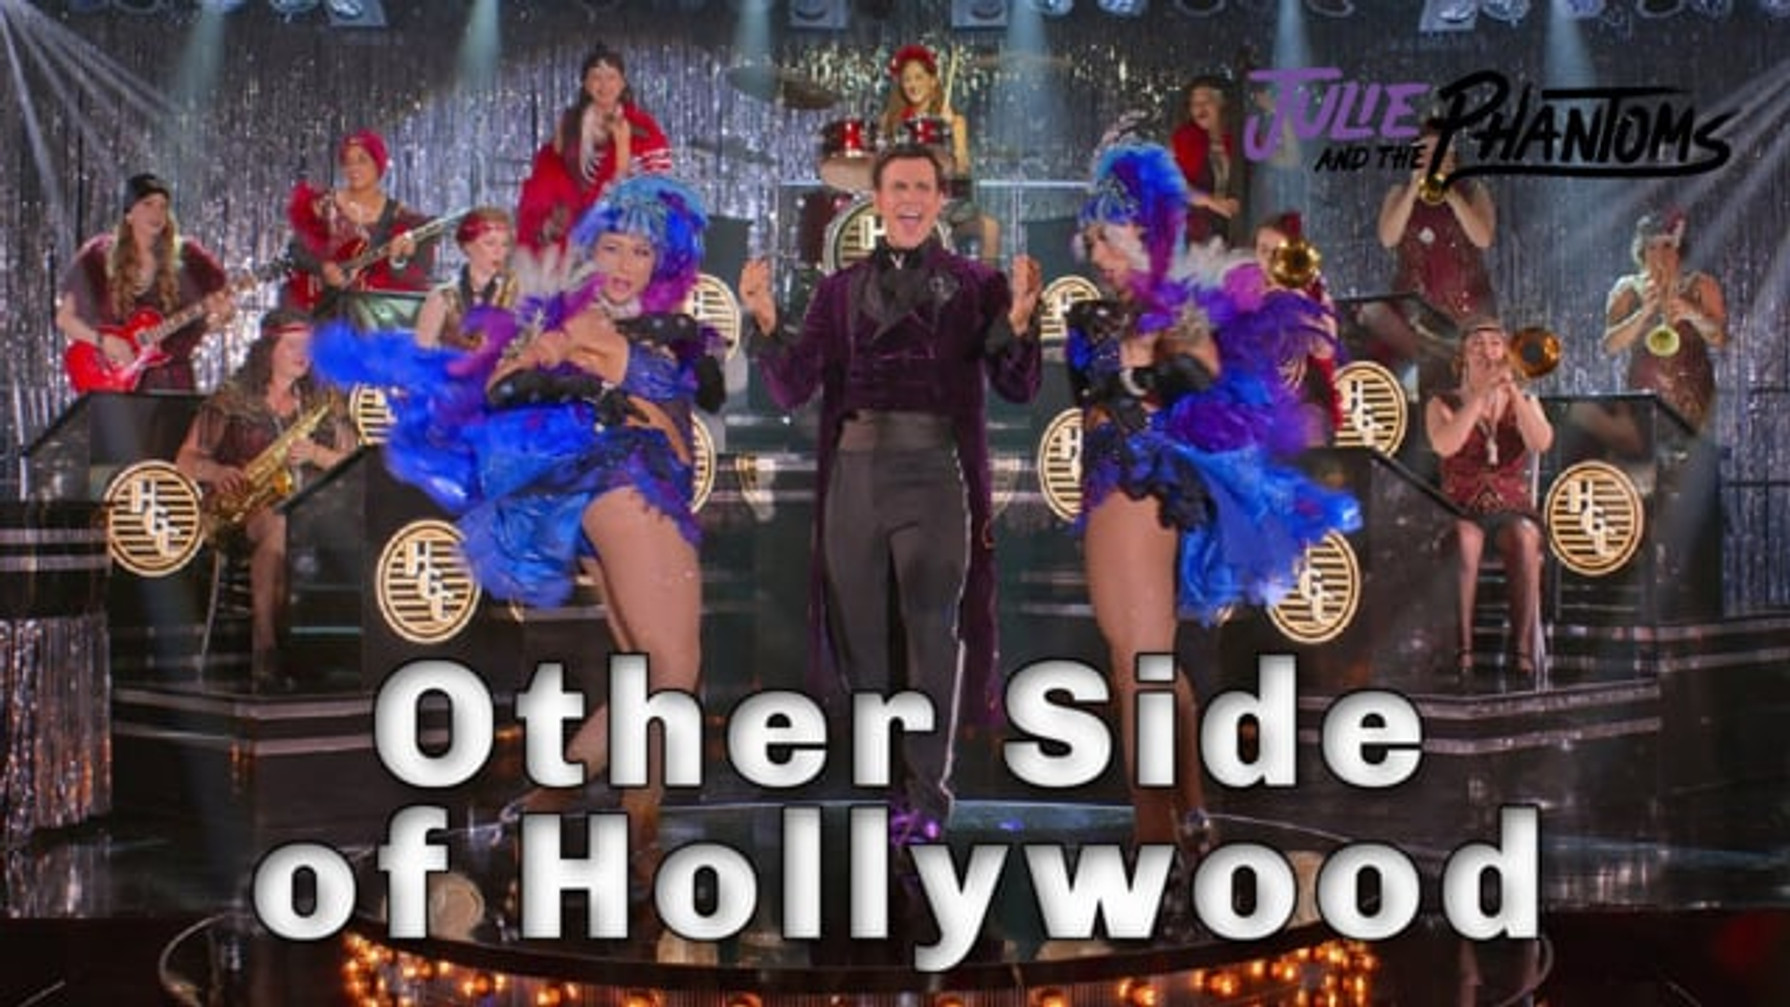 """""""Other Side of Hollywood' Julie and the Phantoms"""